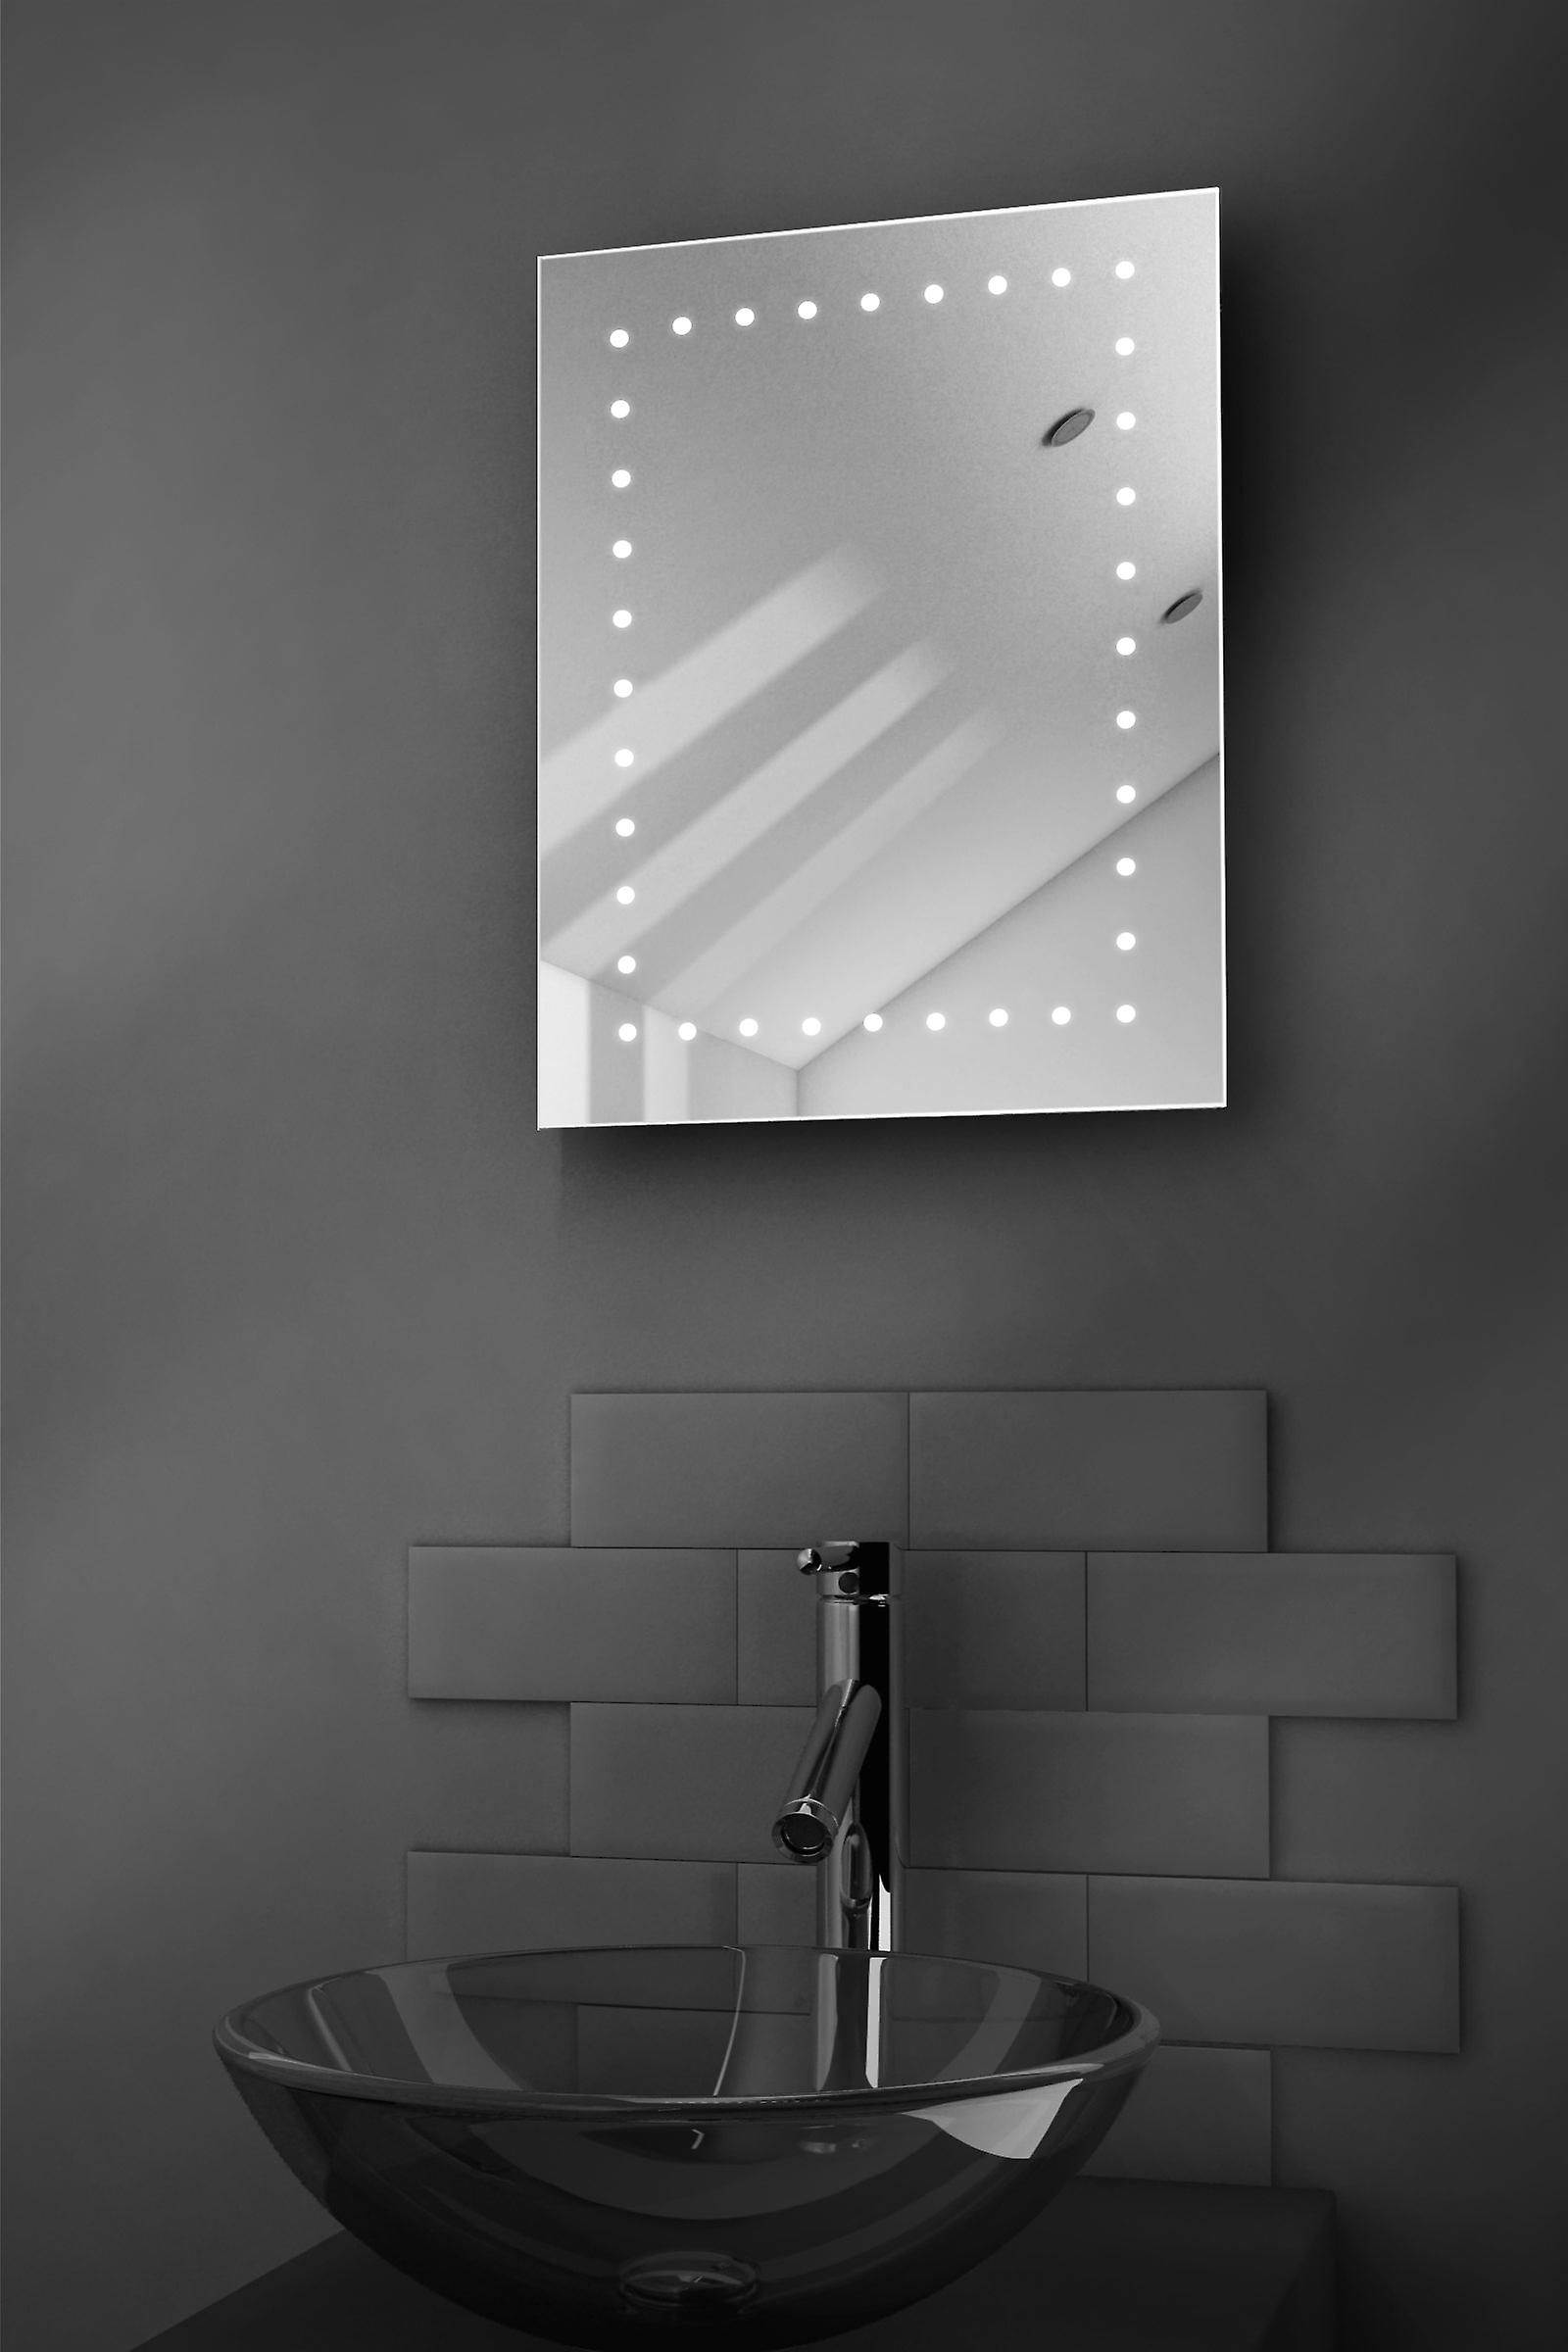 Leon Shaver LED Bathroom Mirror With Demister Pad & Sensor k163